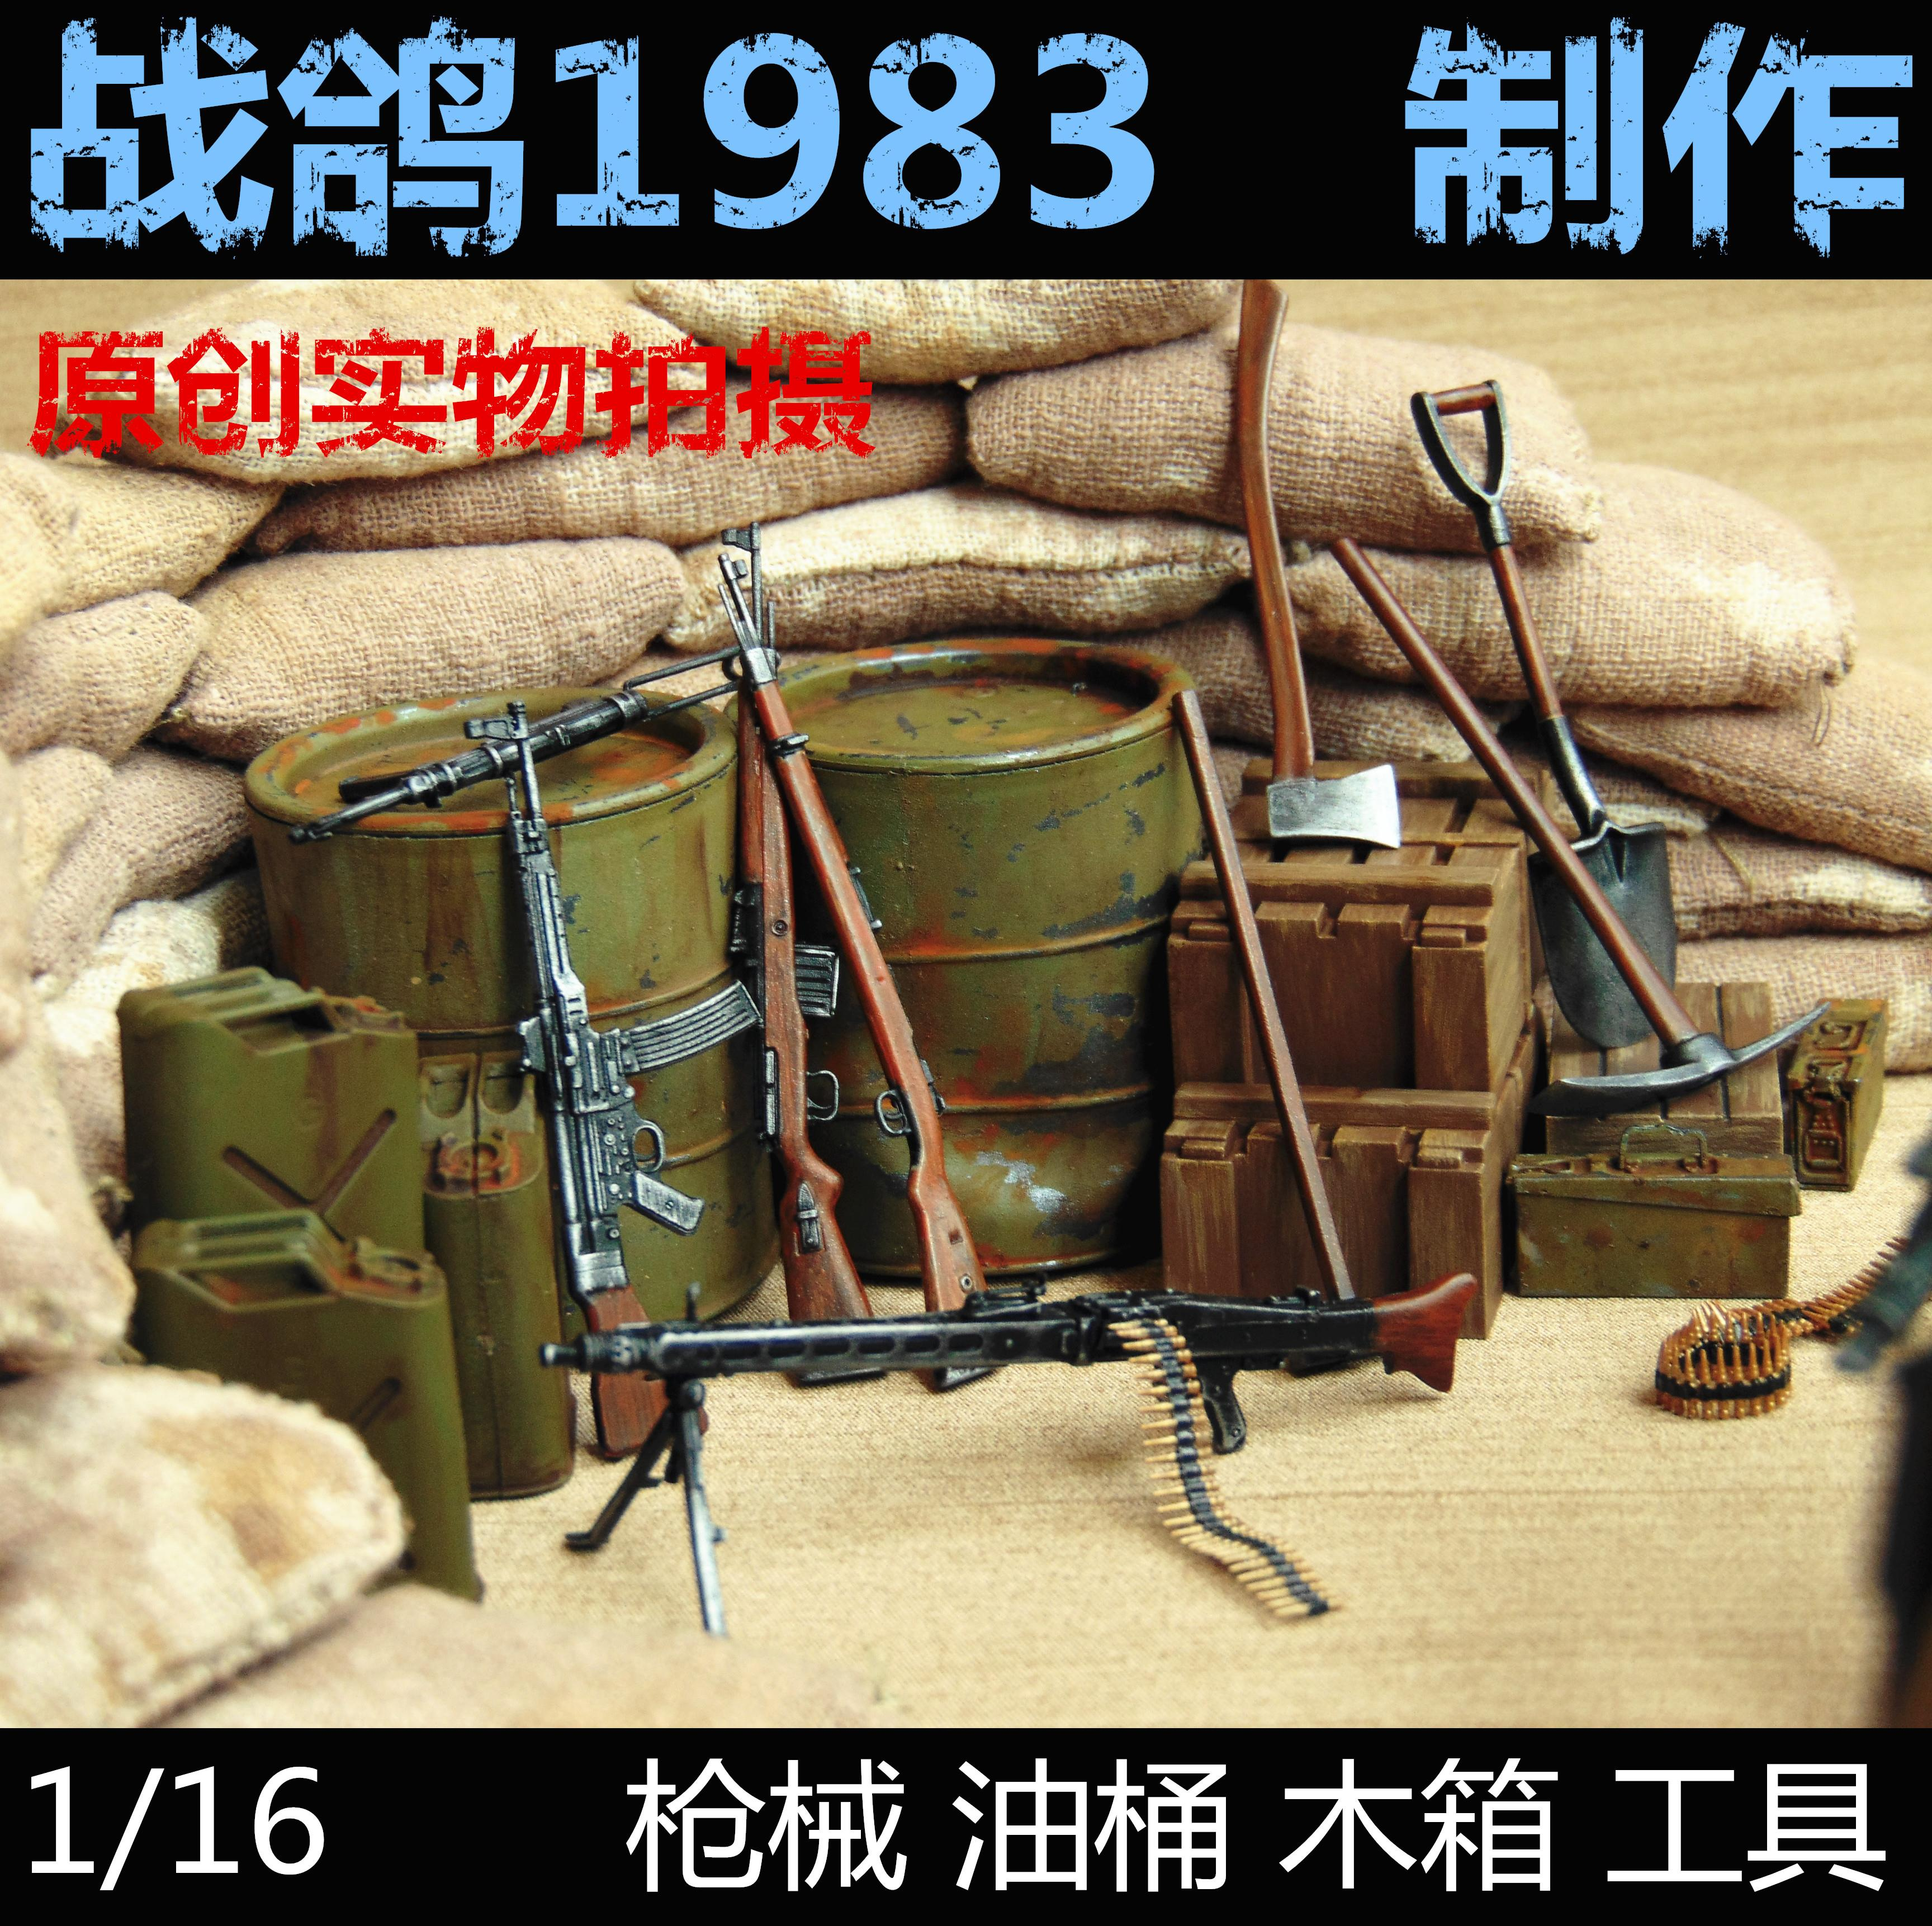 1/16 KNL HOBBY Soldier tank machine gun rifle sandbag bunker scene drums wooden model scenario Accessories knl hobby voyager model pea100 m1126 stricker wheeled armored vehicles with additional fence armor metal etching sheet